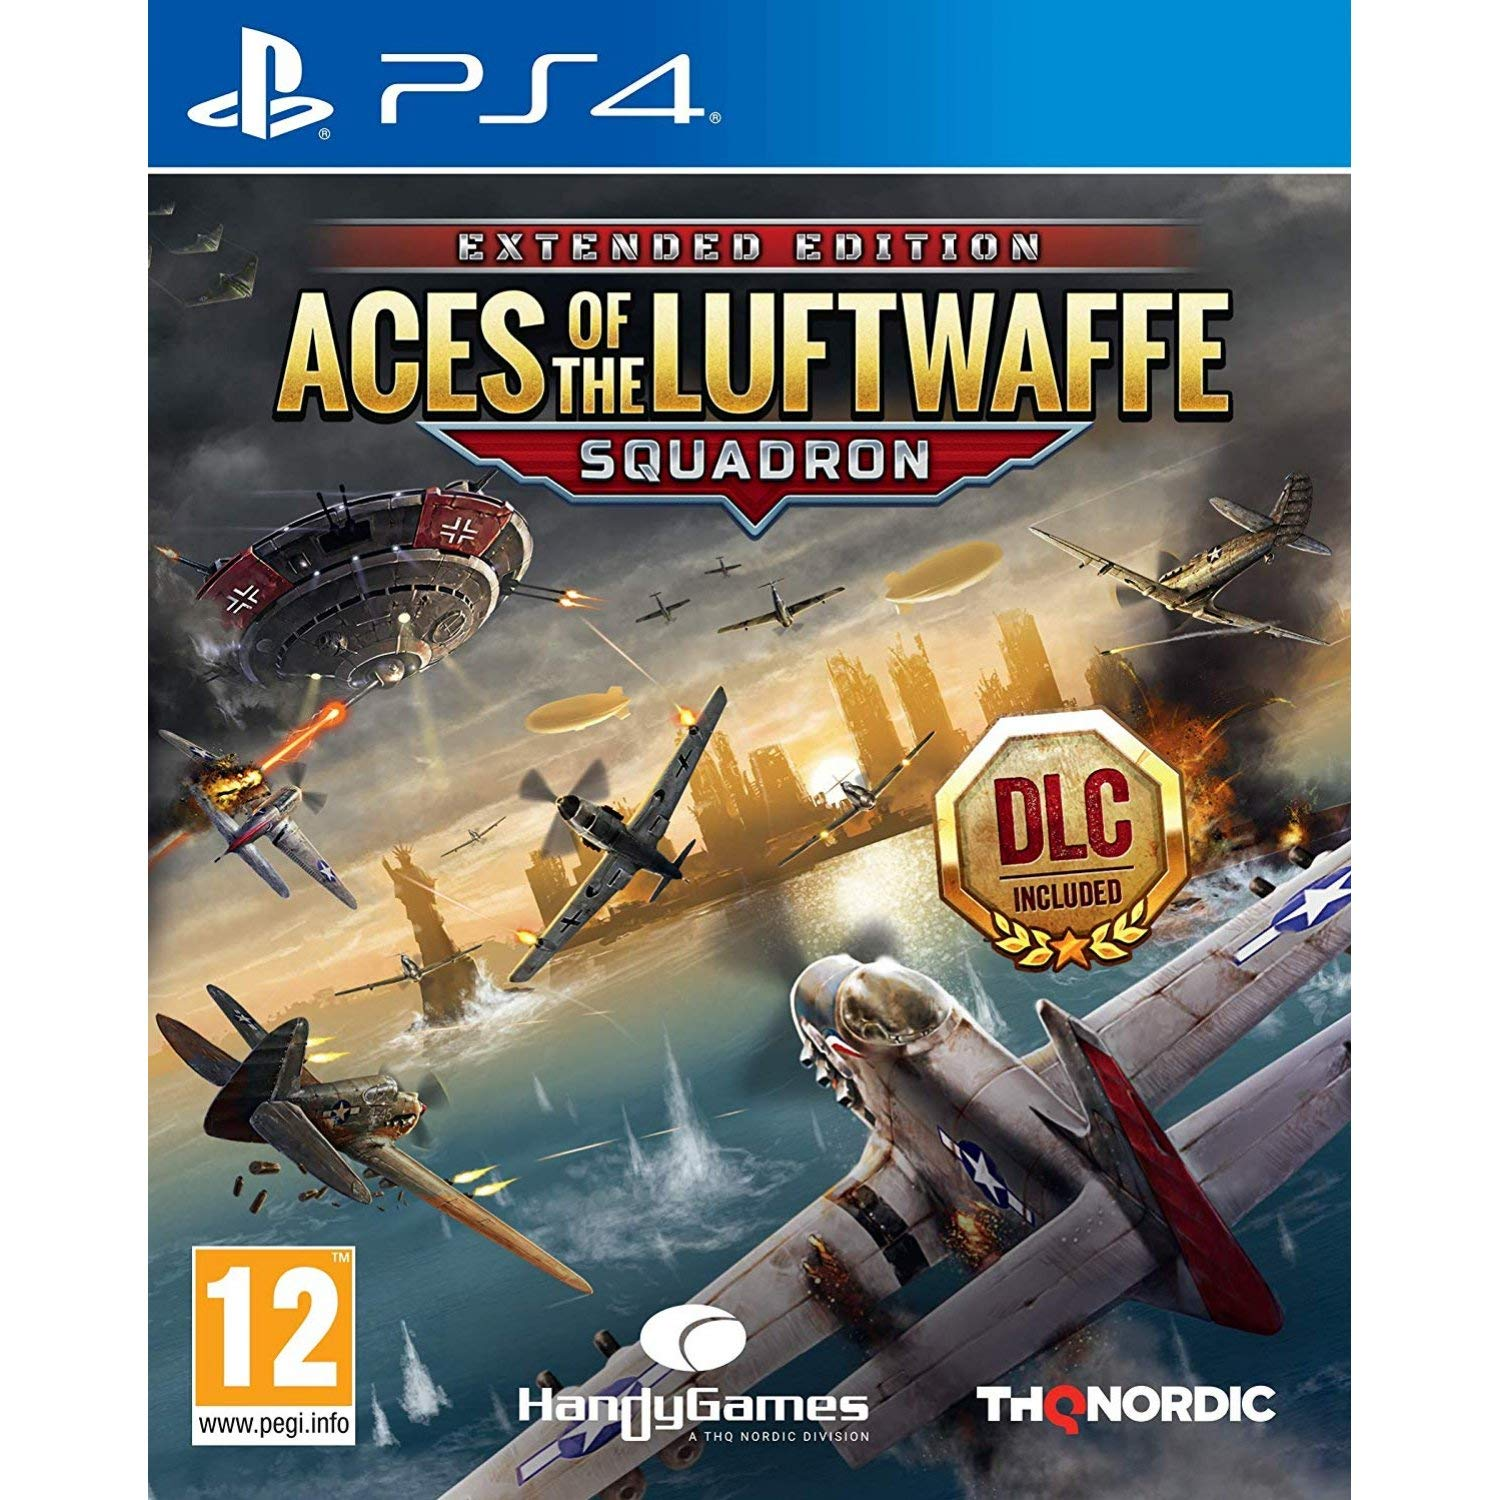 Aces of The Luftwaffe Squadron Extended Edition